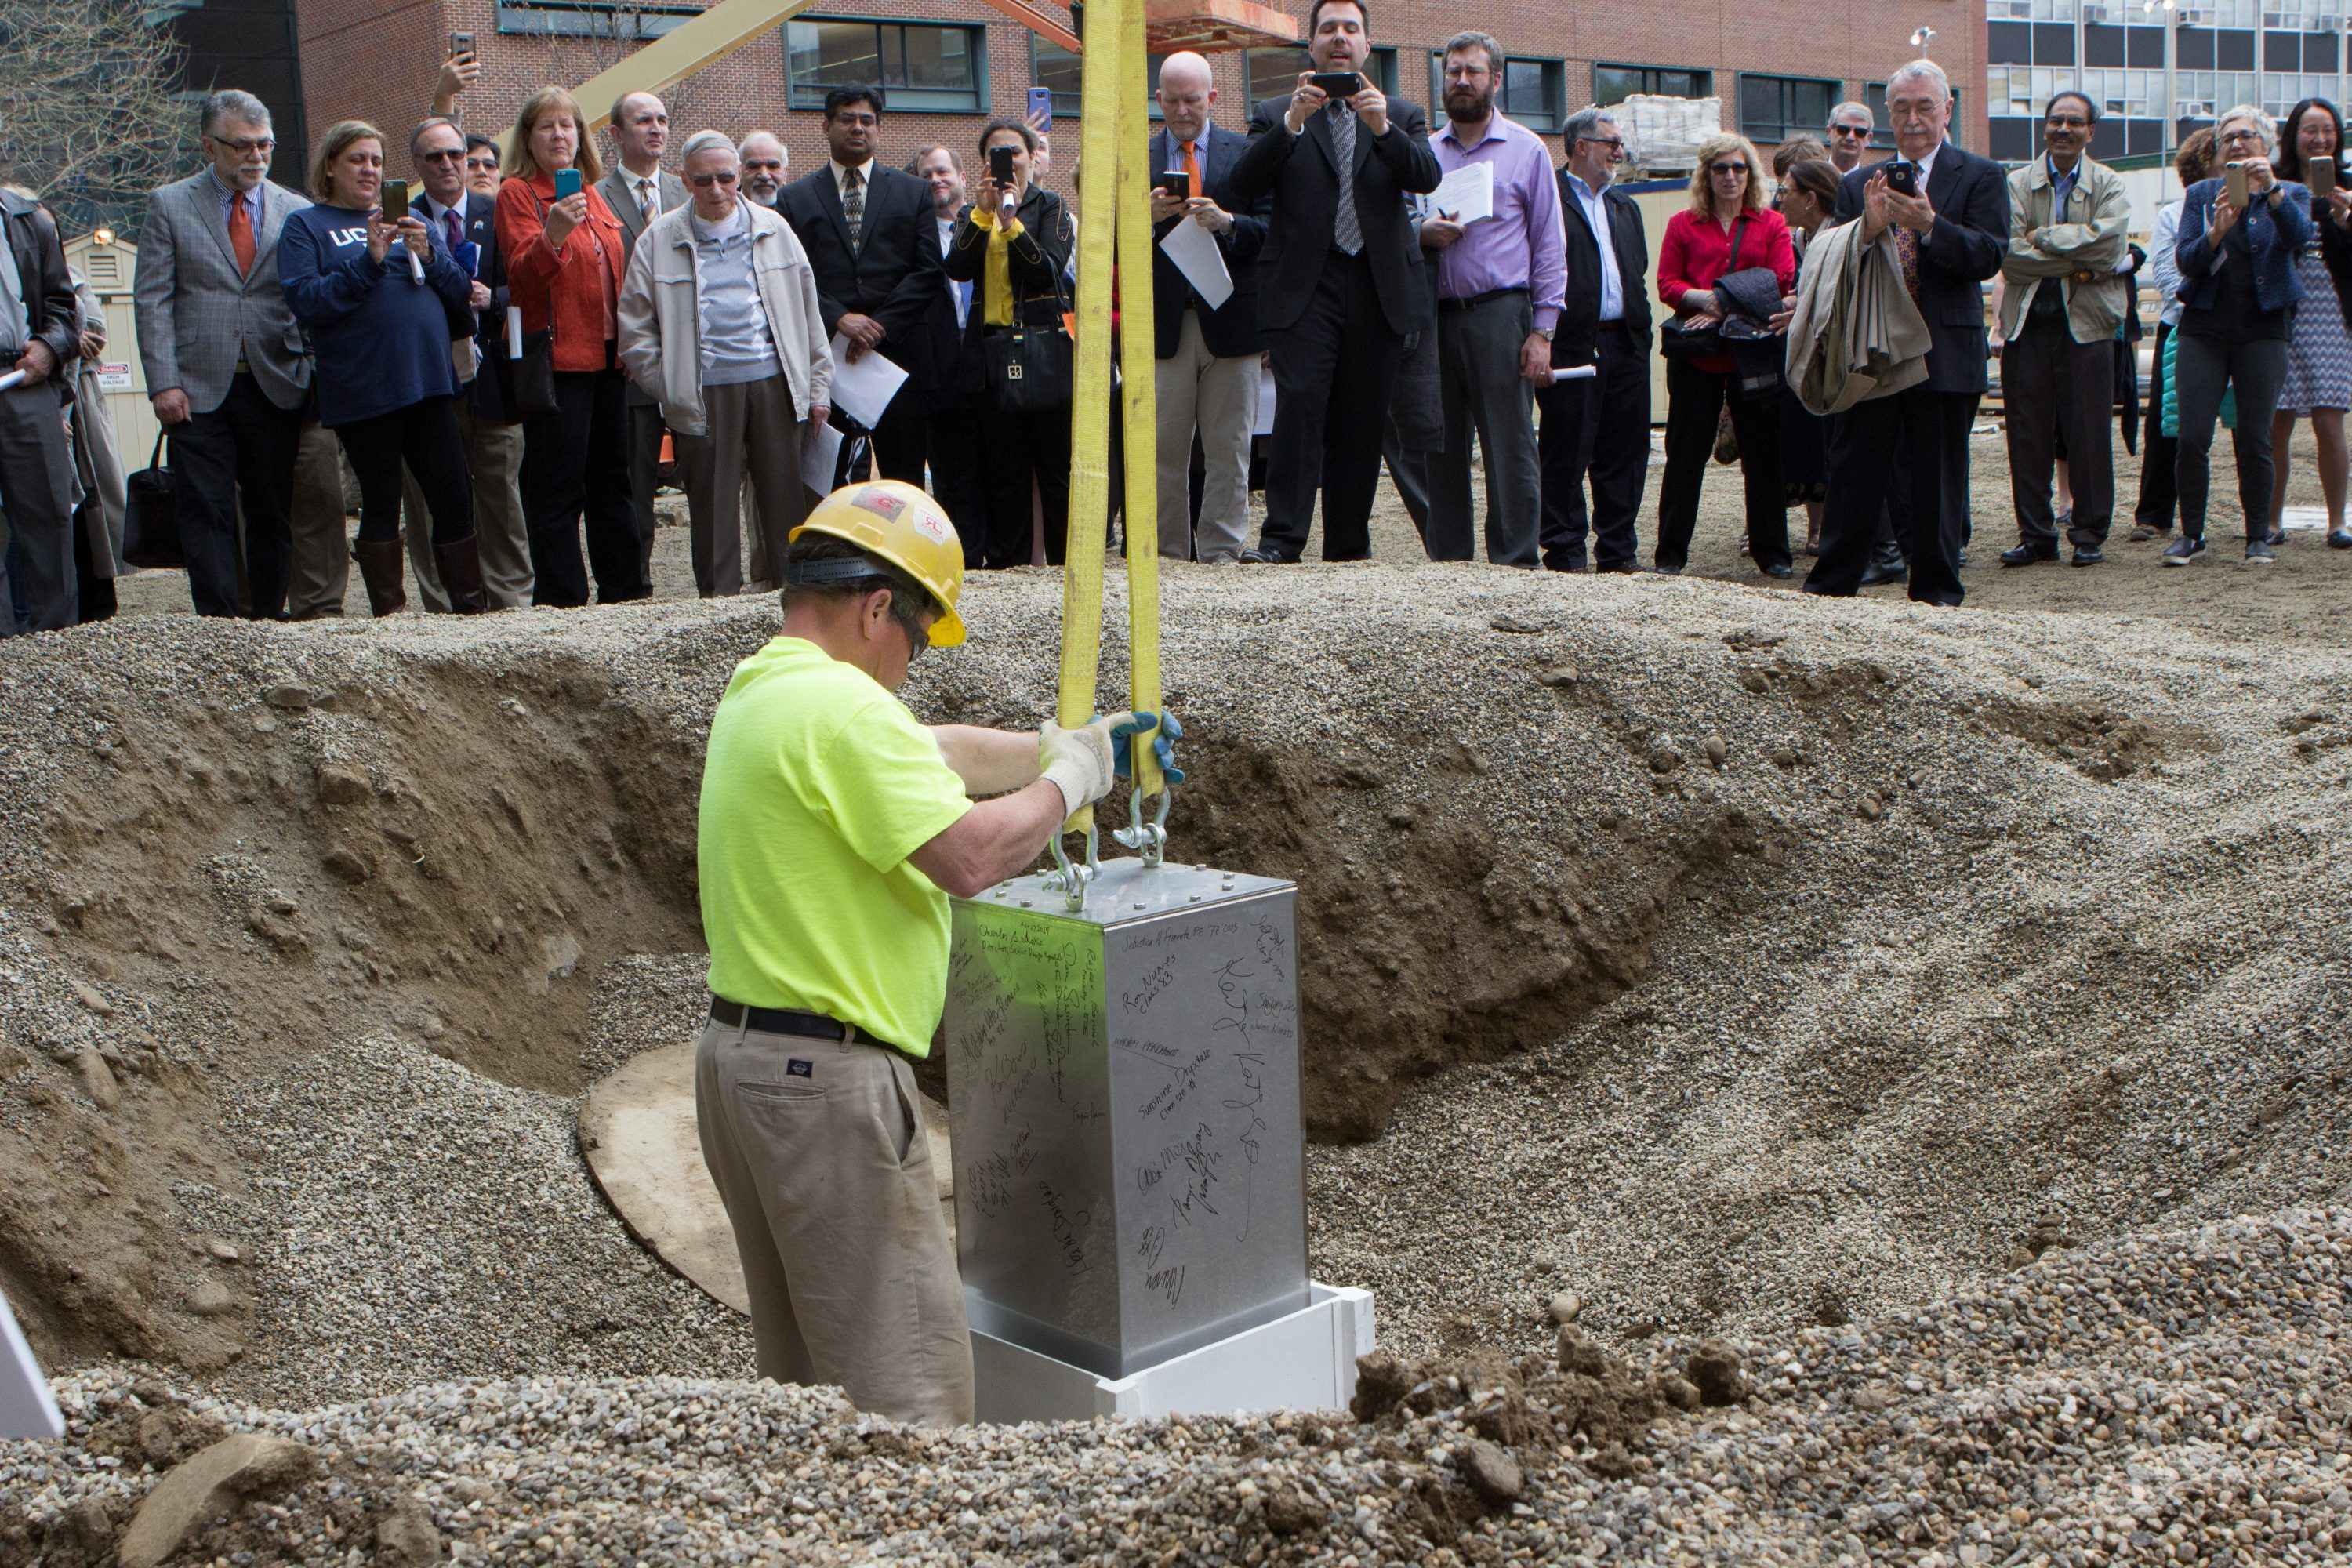 A construction worker lowers the time capsule into an ultra-high performance, fiber-reinforced concrete vault that will hold it for the next 100 years. (Christopher LaRosa/UConn Photo)